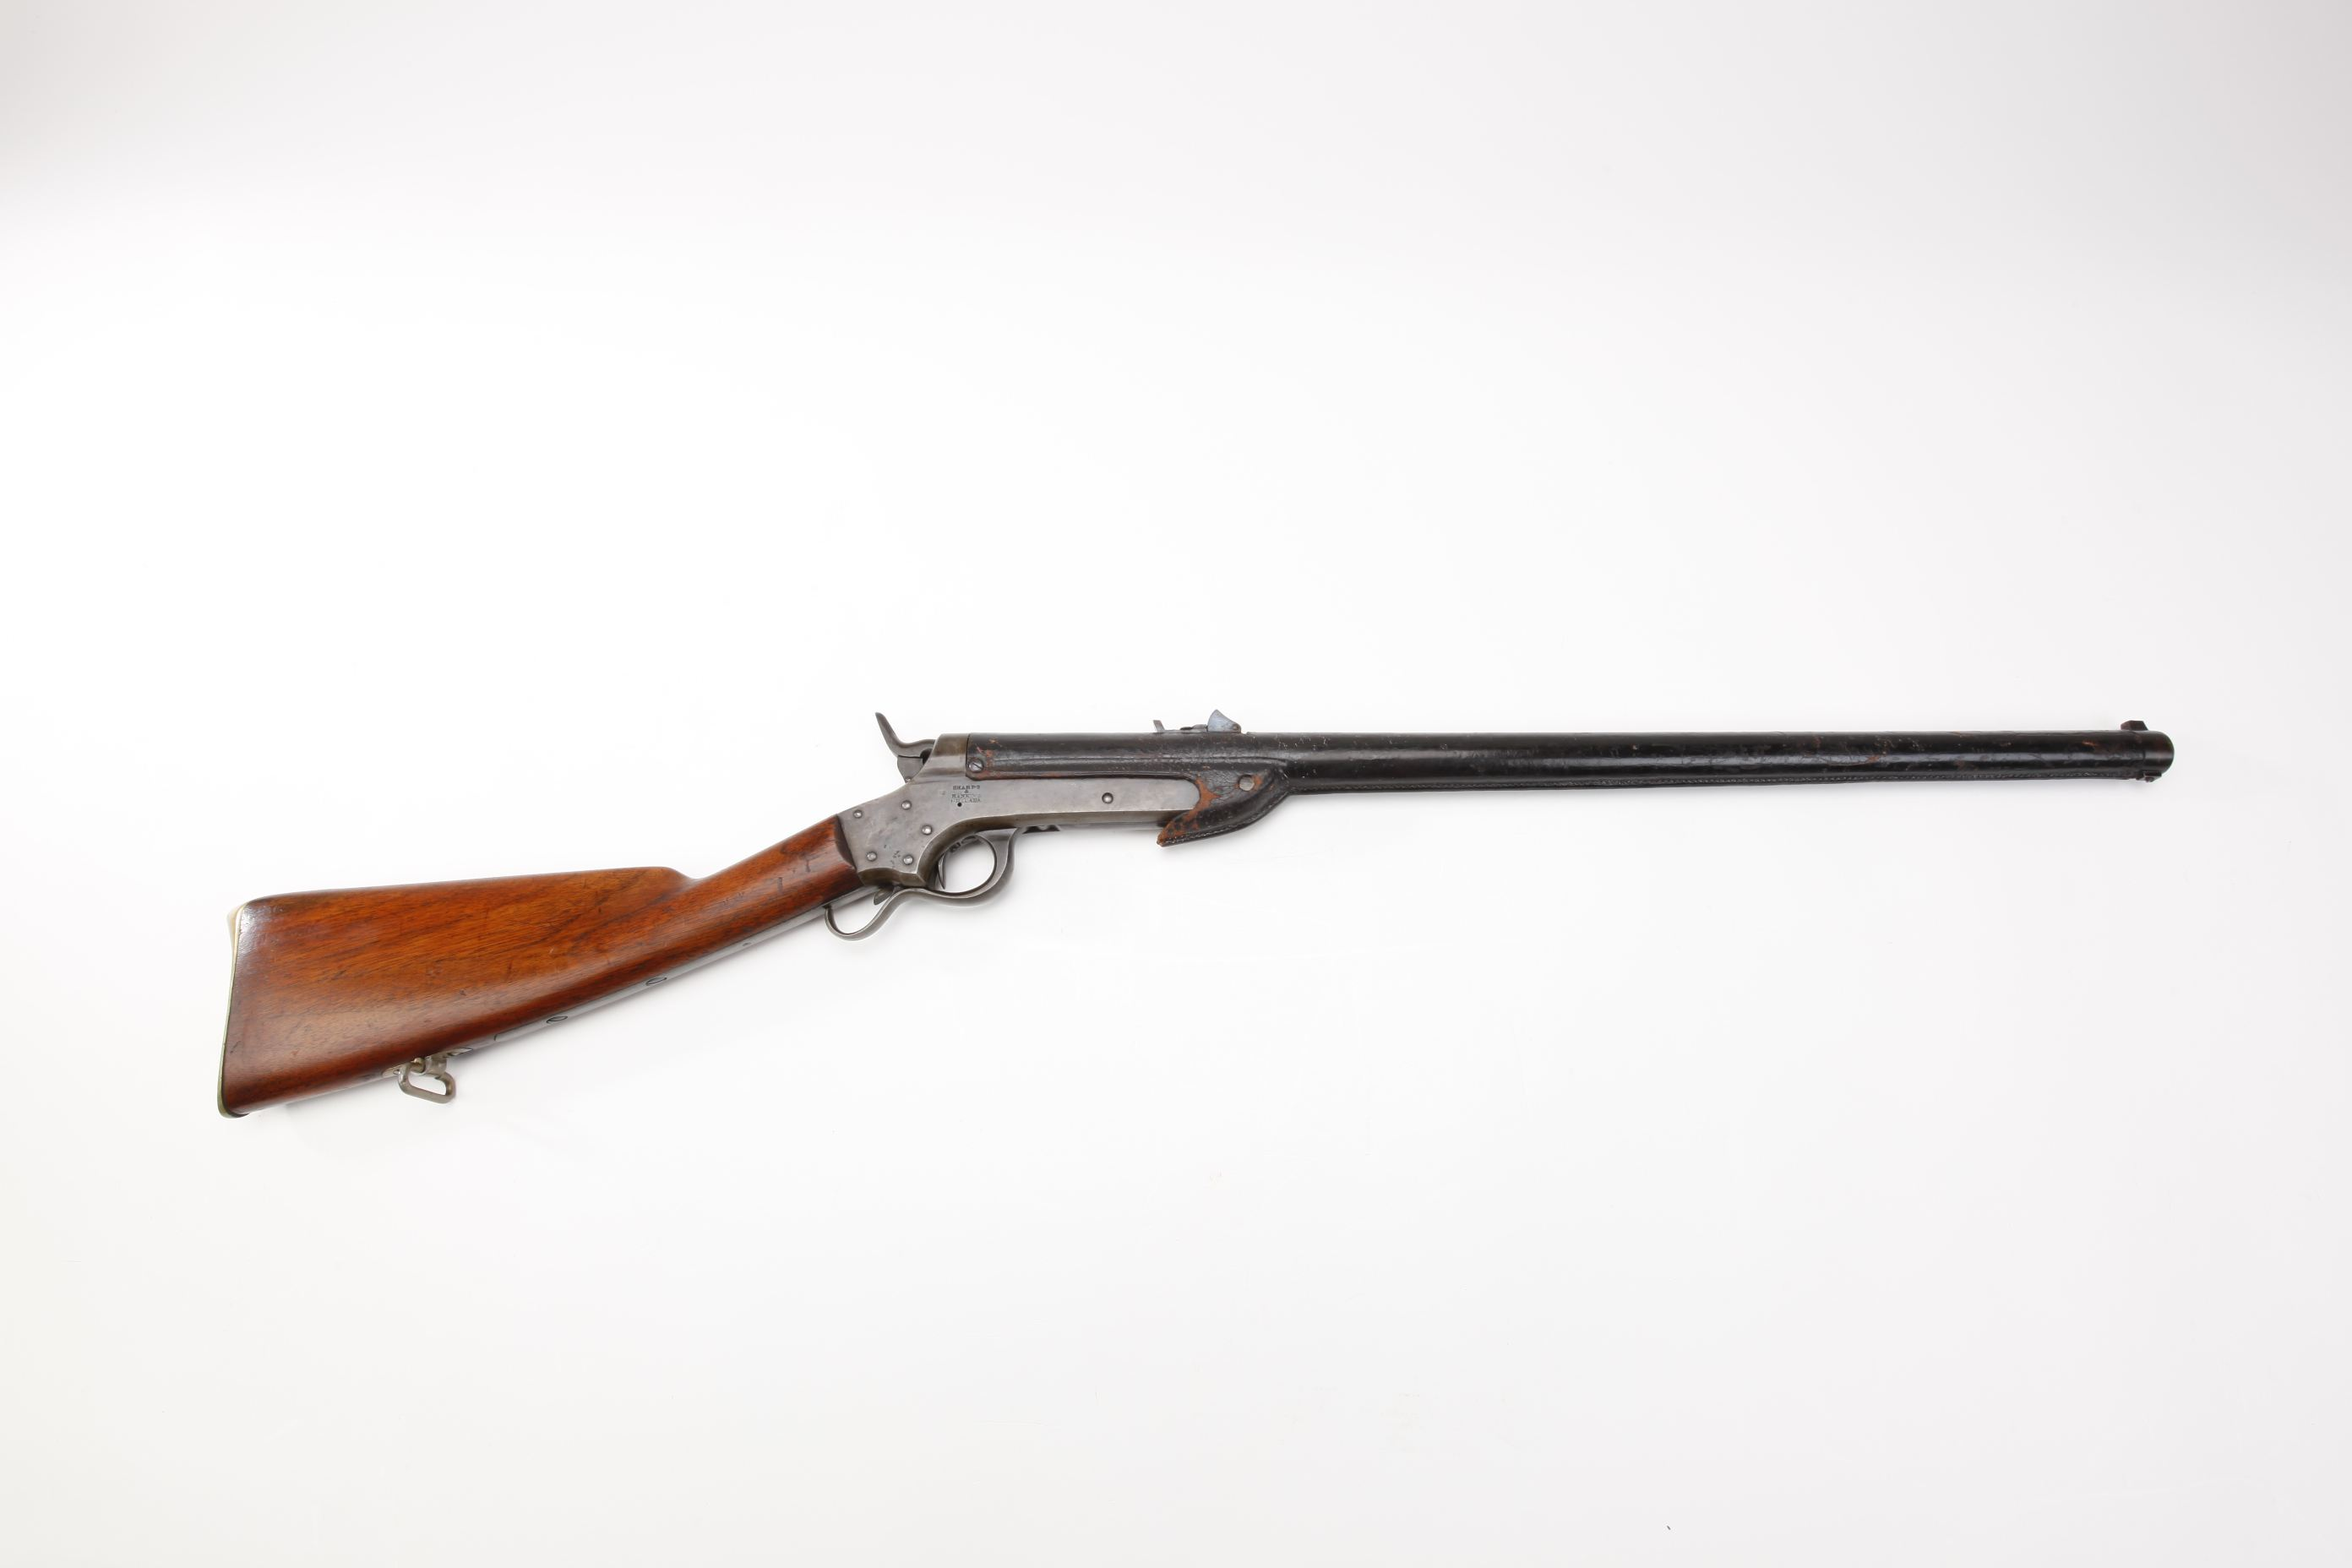 Sharps & Hankins M1862 Single Shot Breechloading Percussion Carbine